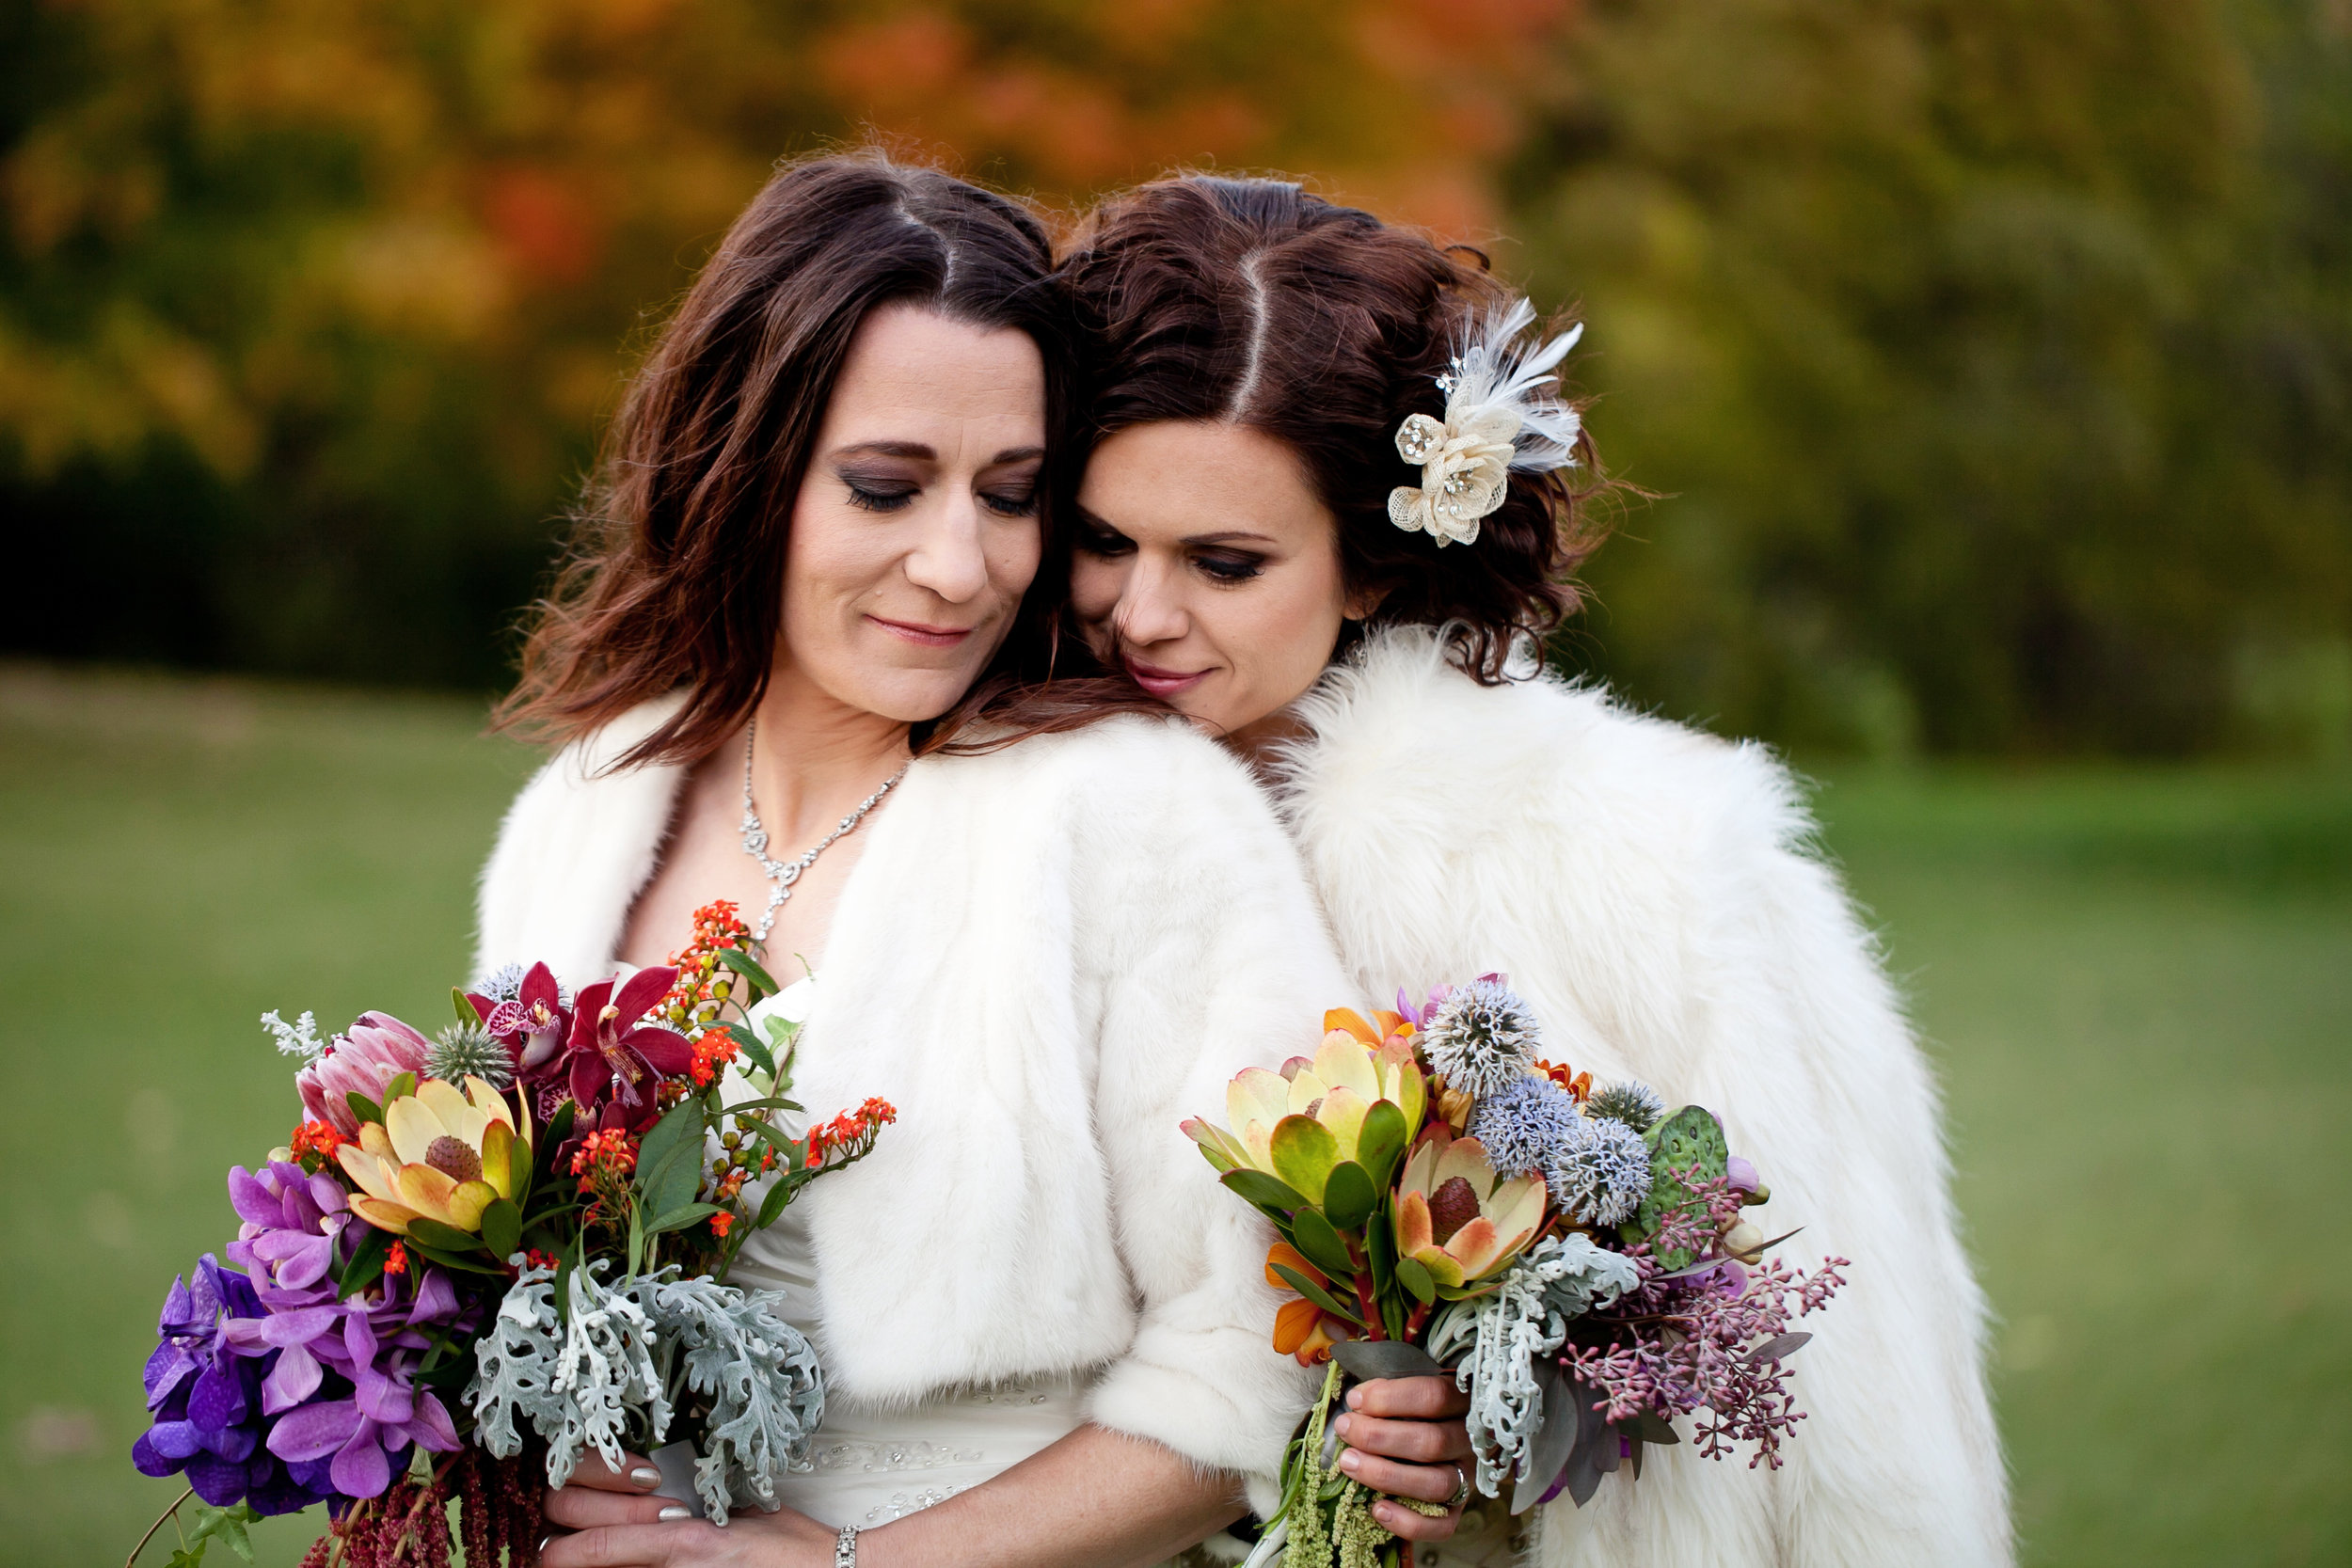 36 two brides two brides poses candid wedding shots brides with fur coats colorful bouquets spring bouquets Life Design Events.jpg